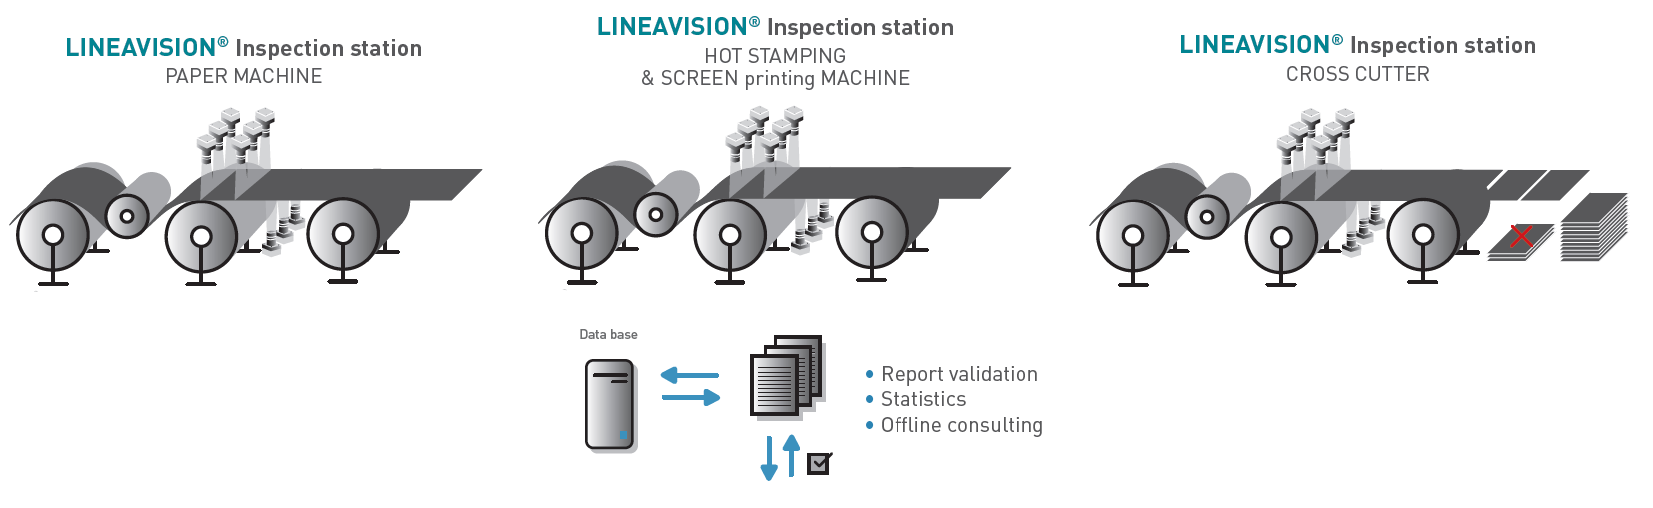 lineavision ultra security paper application